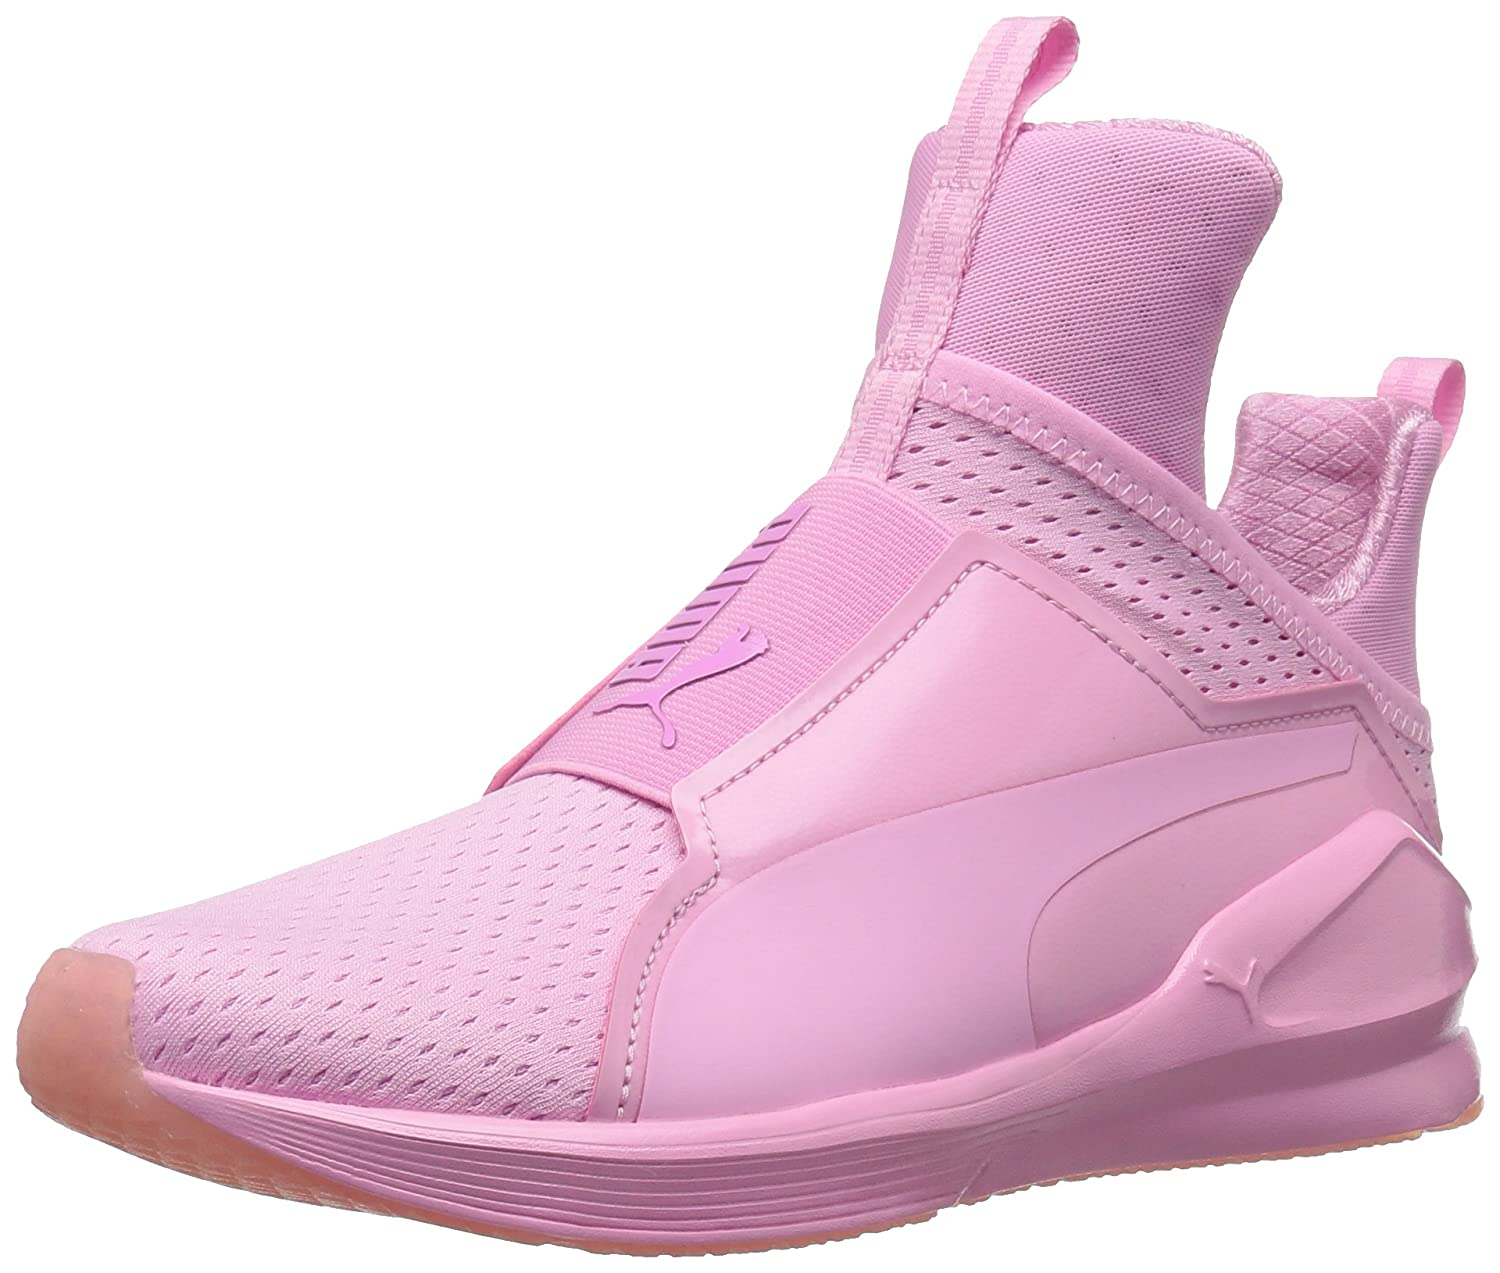 PUMA Women's Fierce Bright Mesh Cross-Trainer Shoe B01J5RVUWU 5.5 M US|Prism Pink